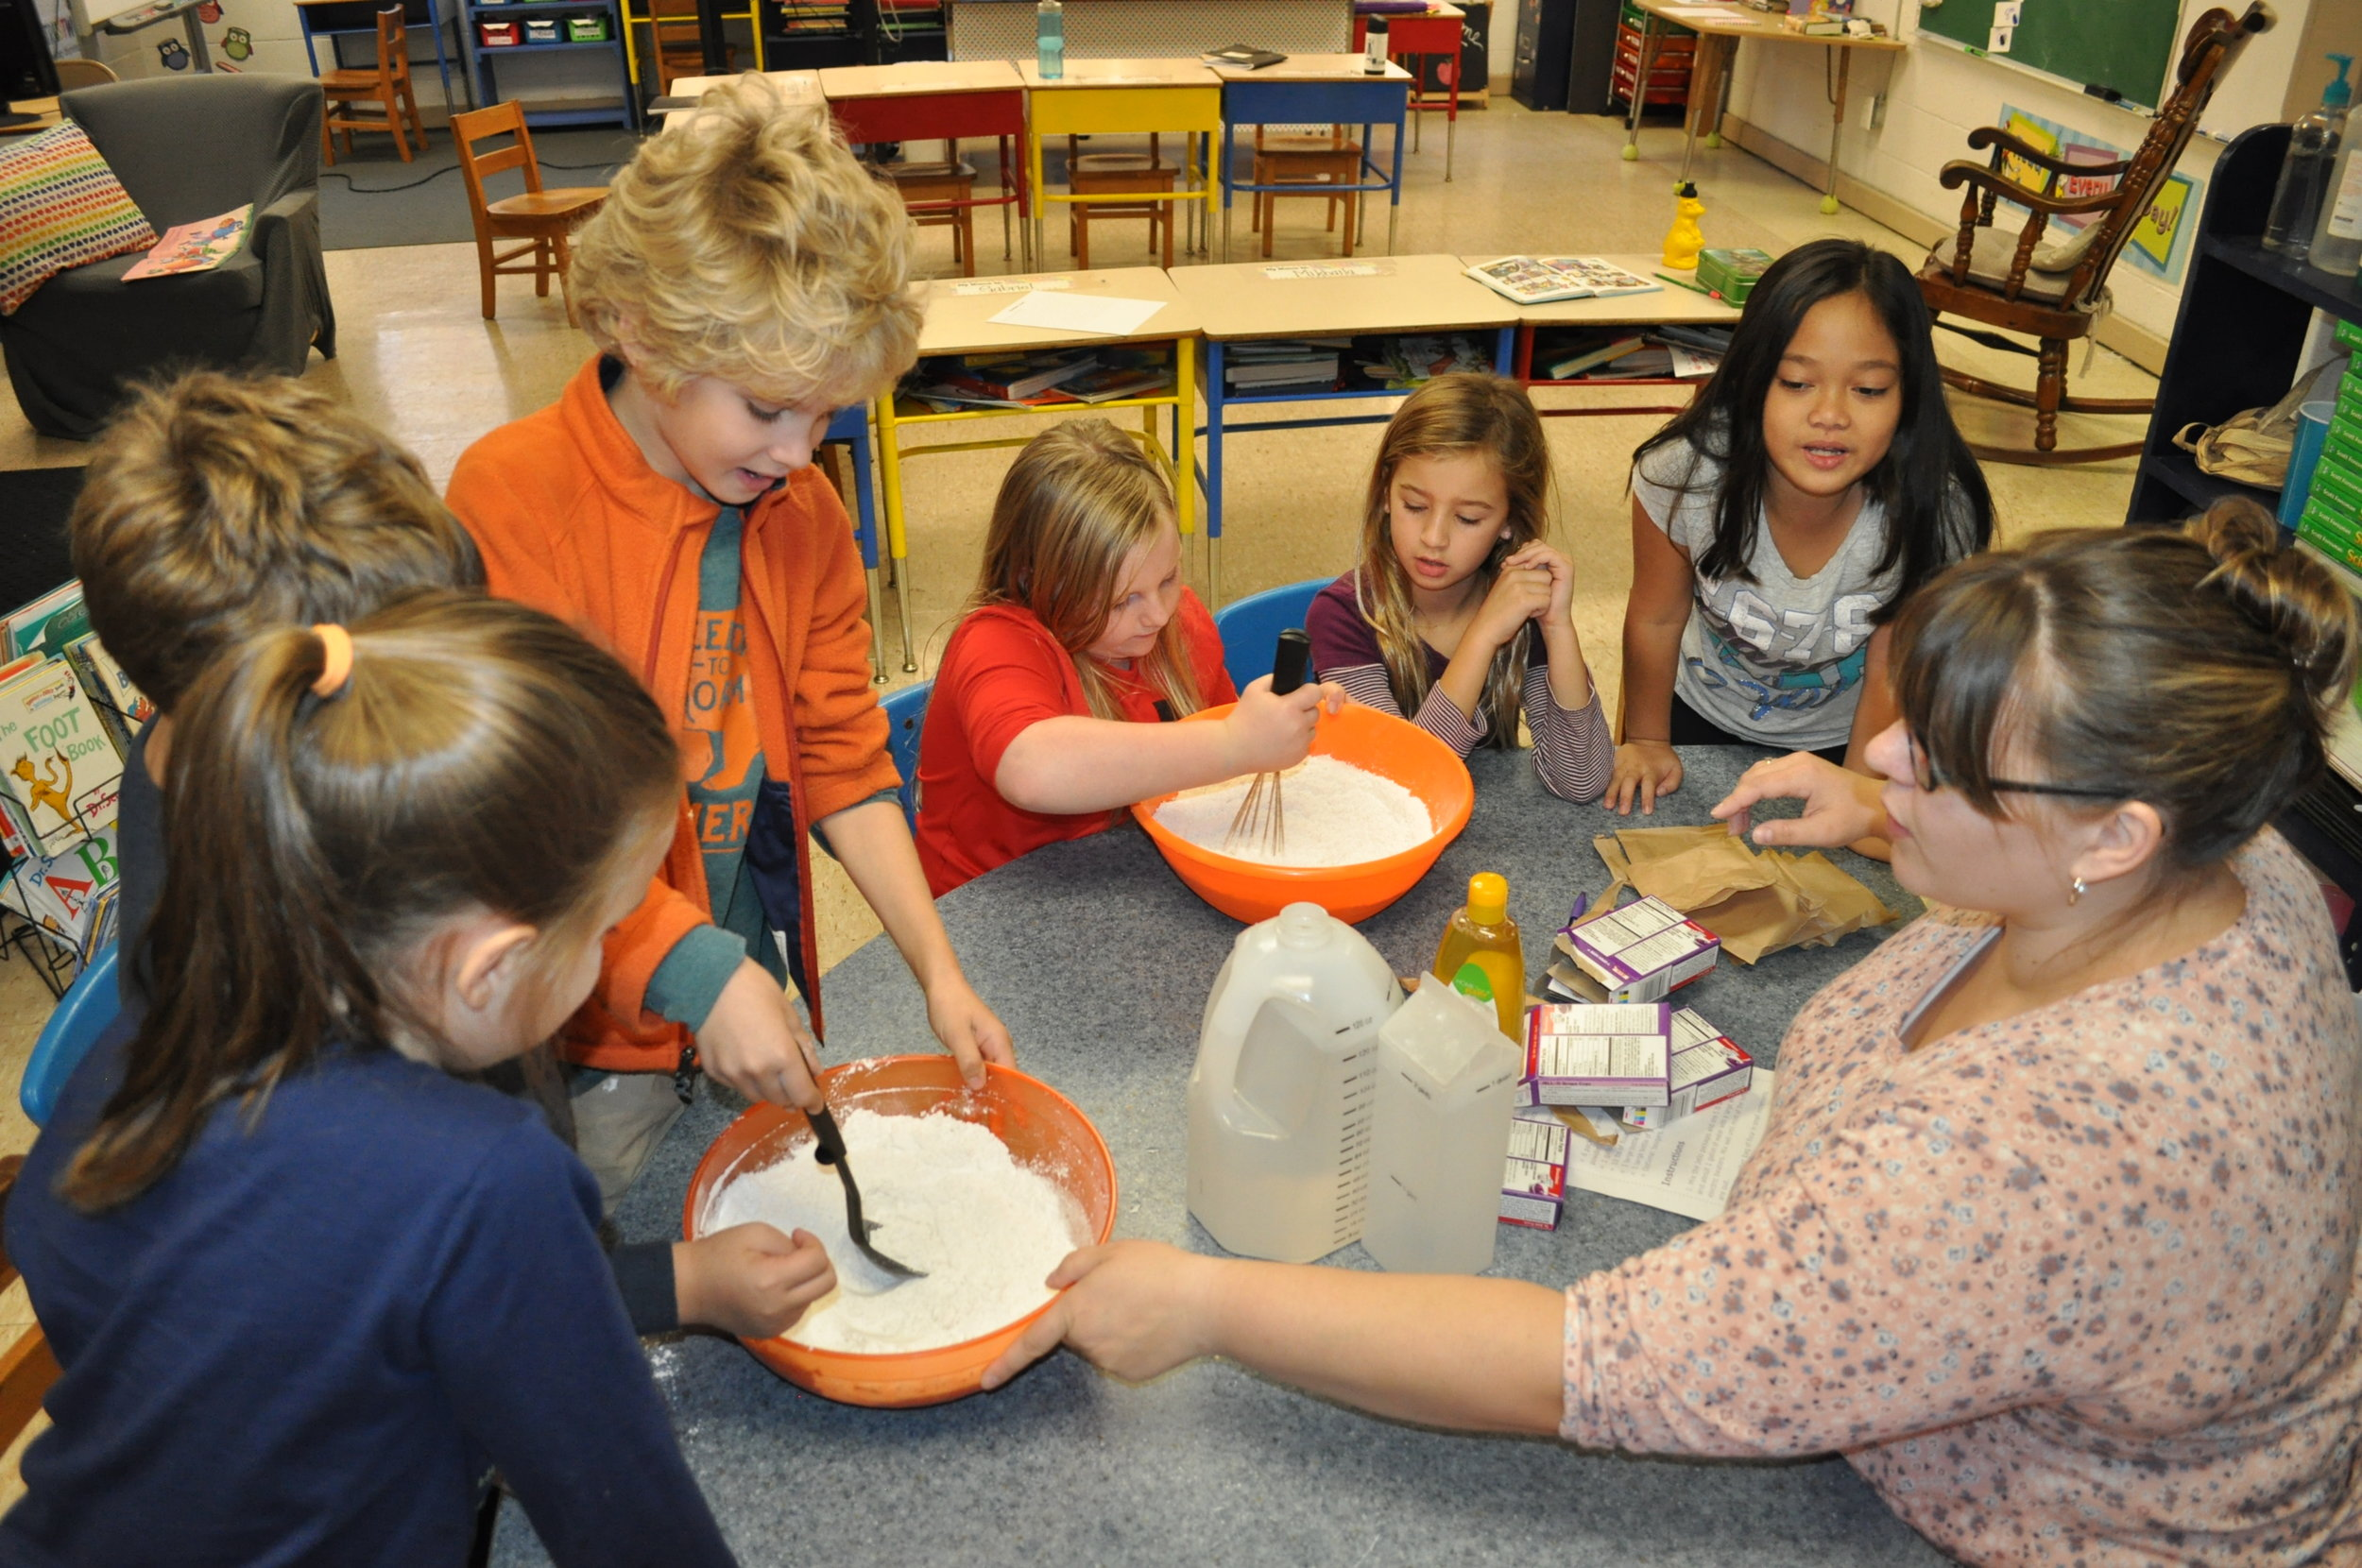 Slime making was a fun experiment for our 2nd and 5th graders to make!